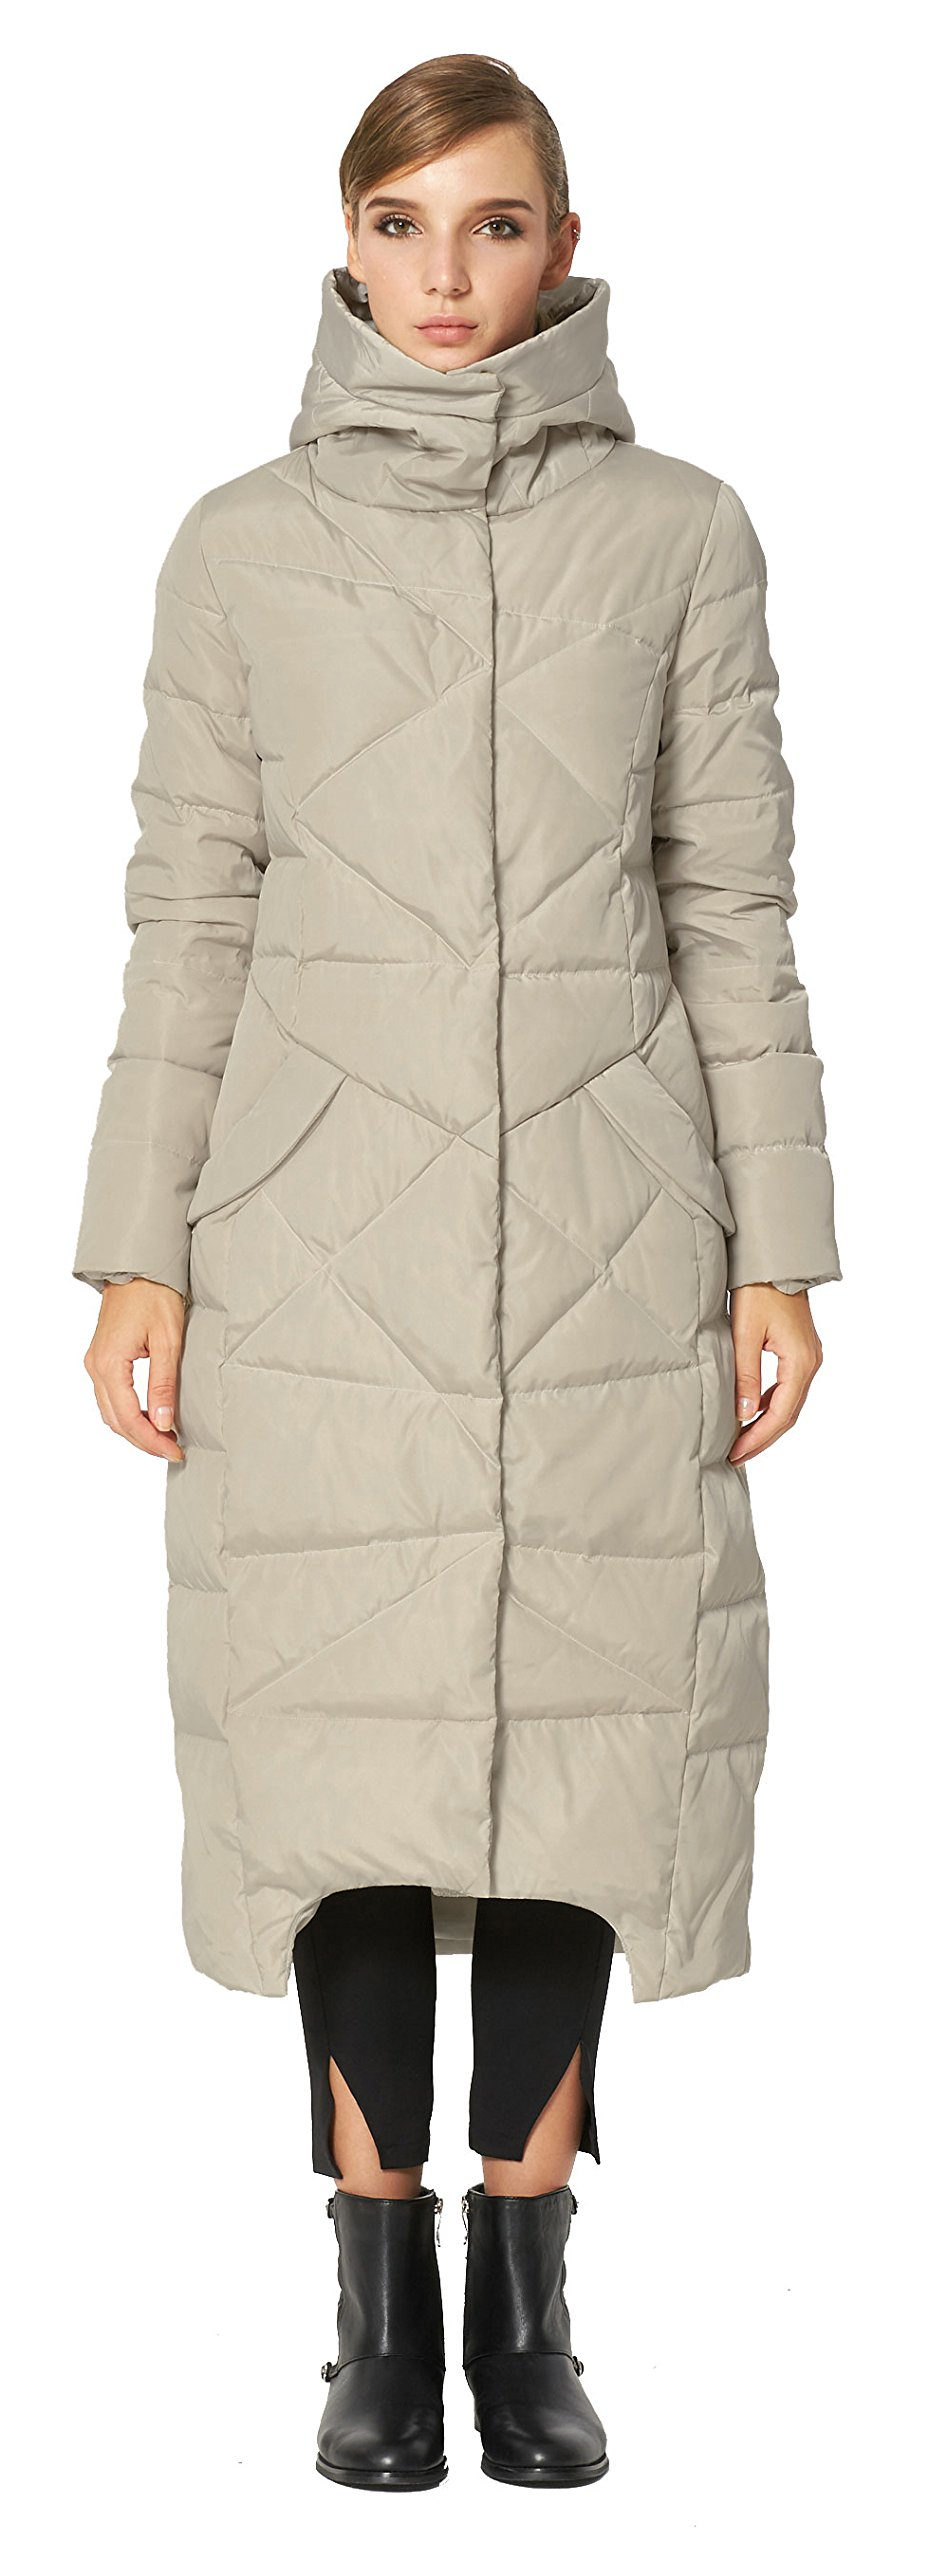 Orolay Women's Puffer Down Coat Winter Maxi Jacket with Hood Beige XS